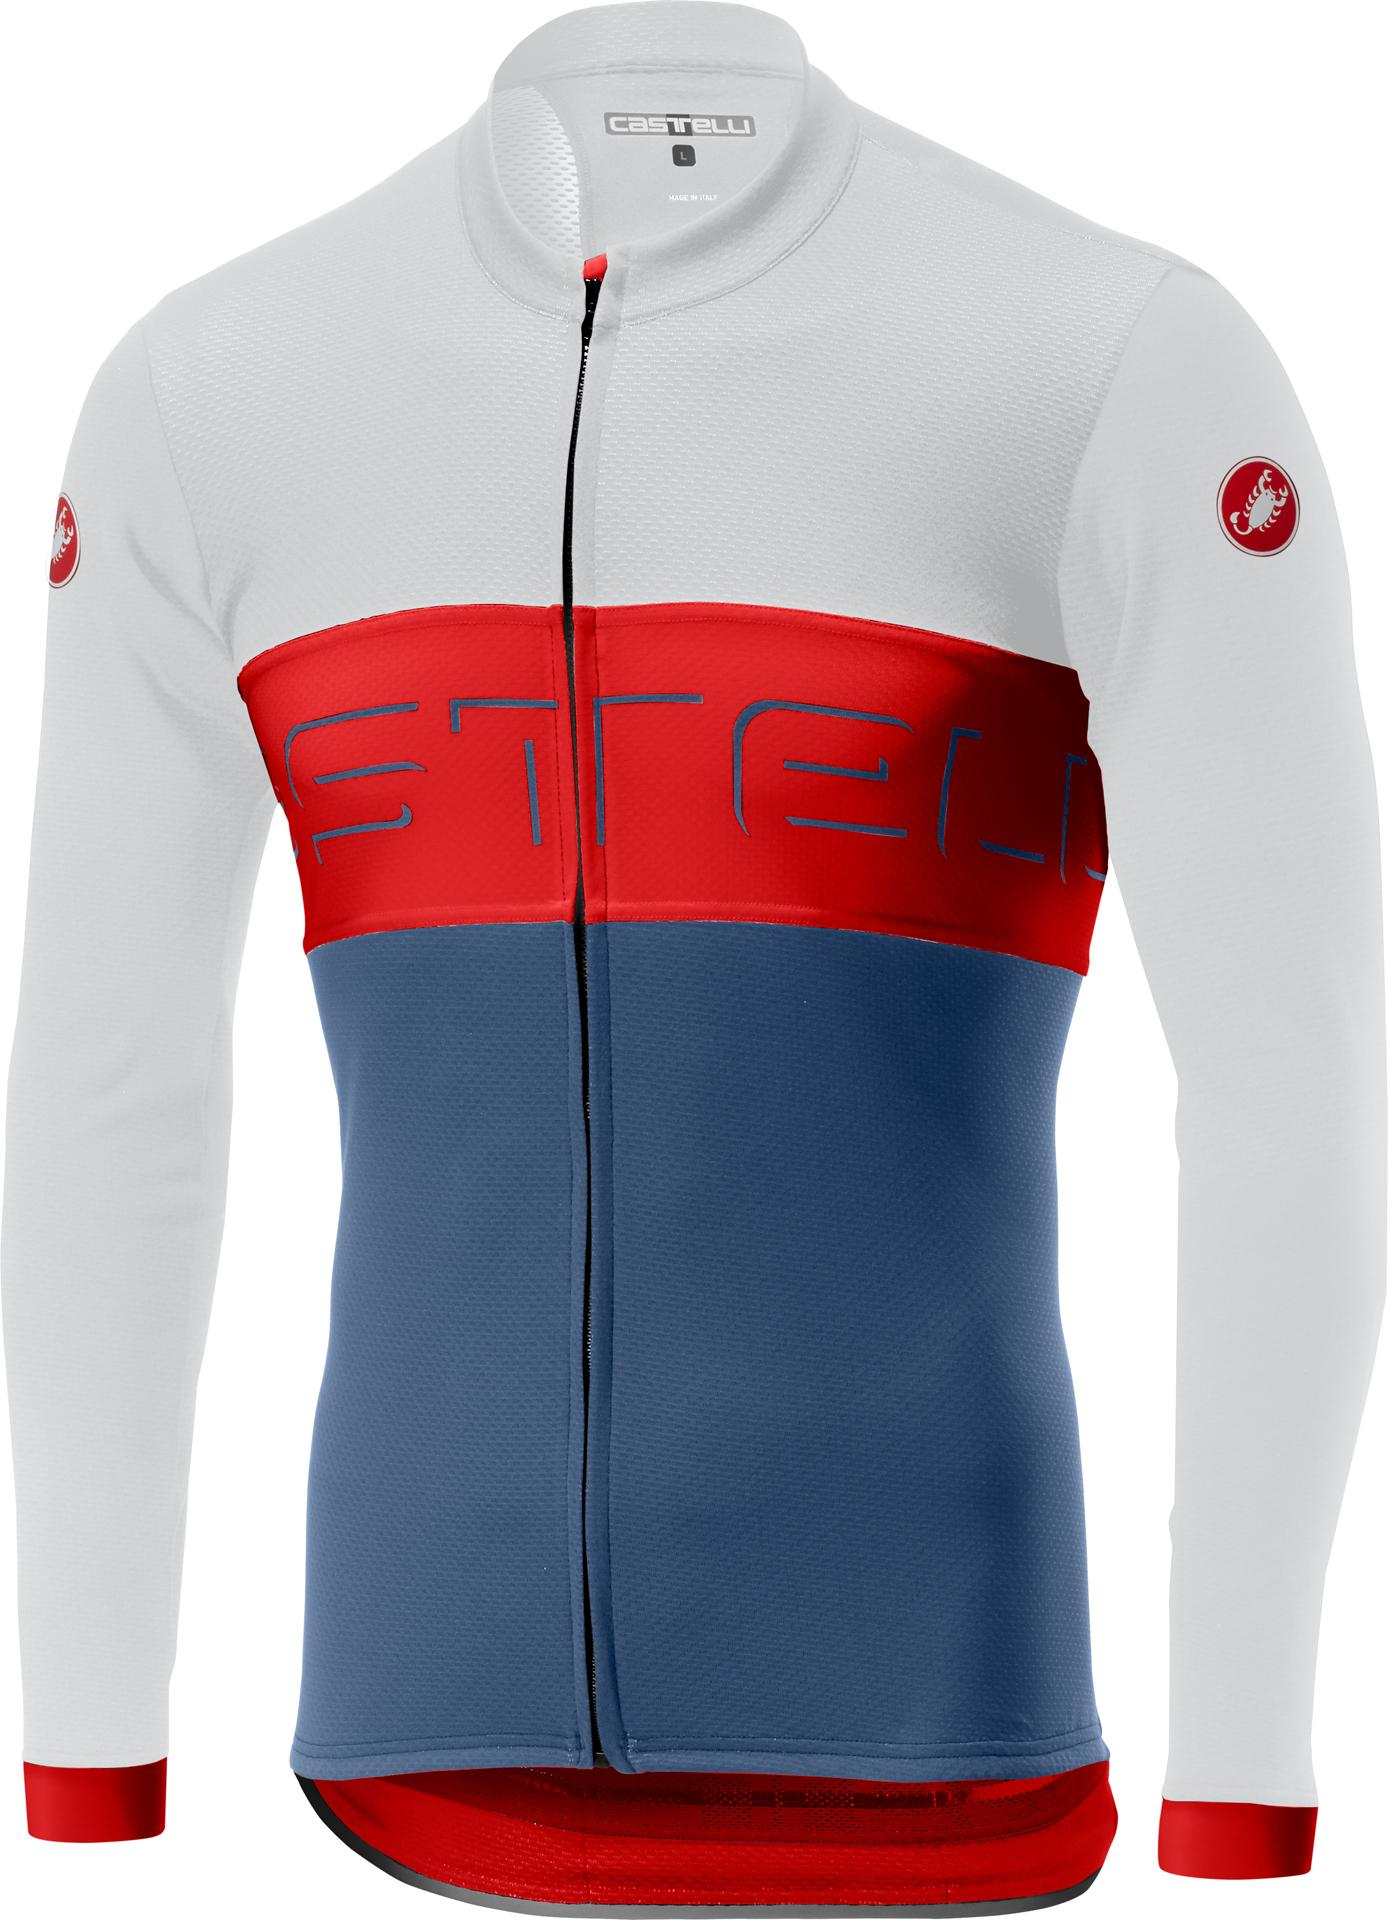 Castelli Fietsshirt lange mouwen Heren Ivoor Rood - CA Prologo VI Long Sleeve Fz-Ivo/Red/Light/S Blue